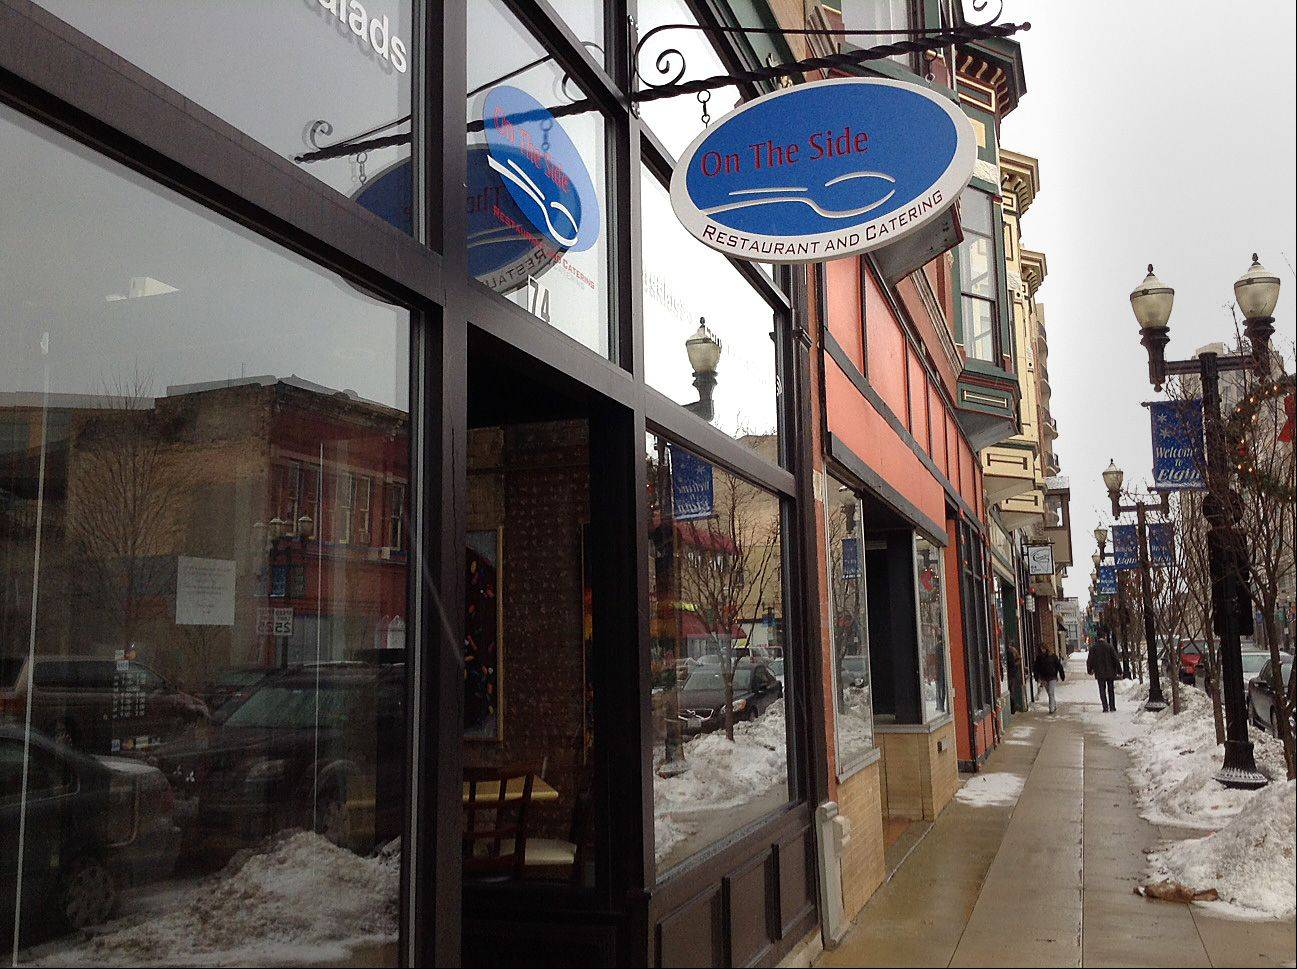 On the Side Restaurant and Catering in downtown Elgin closed Tuesday after being in business for about a year. It was owned by Tom Creighton of East Dundee.